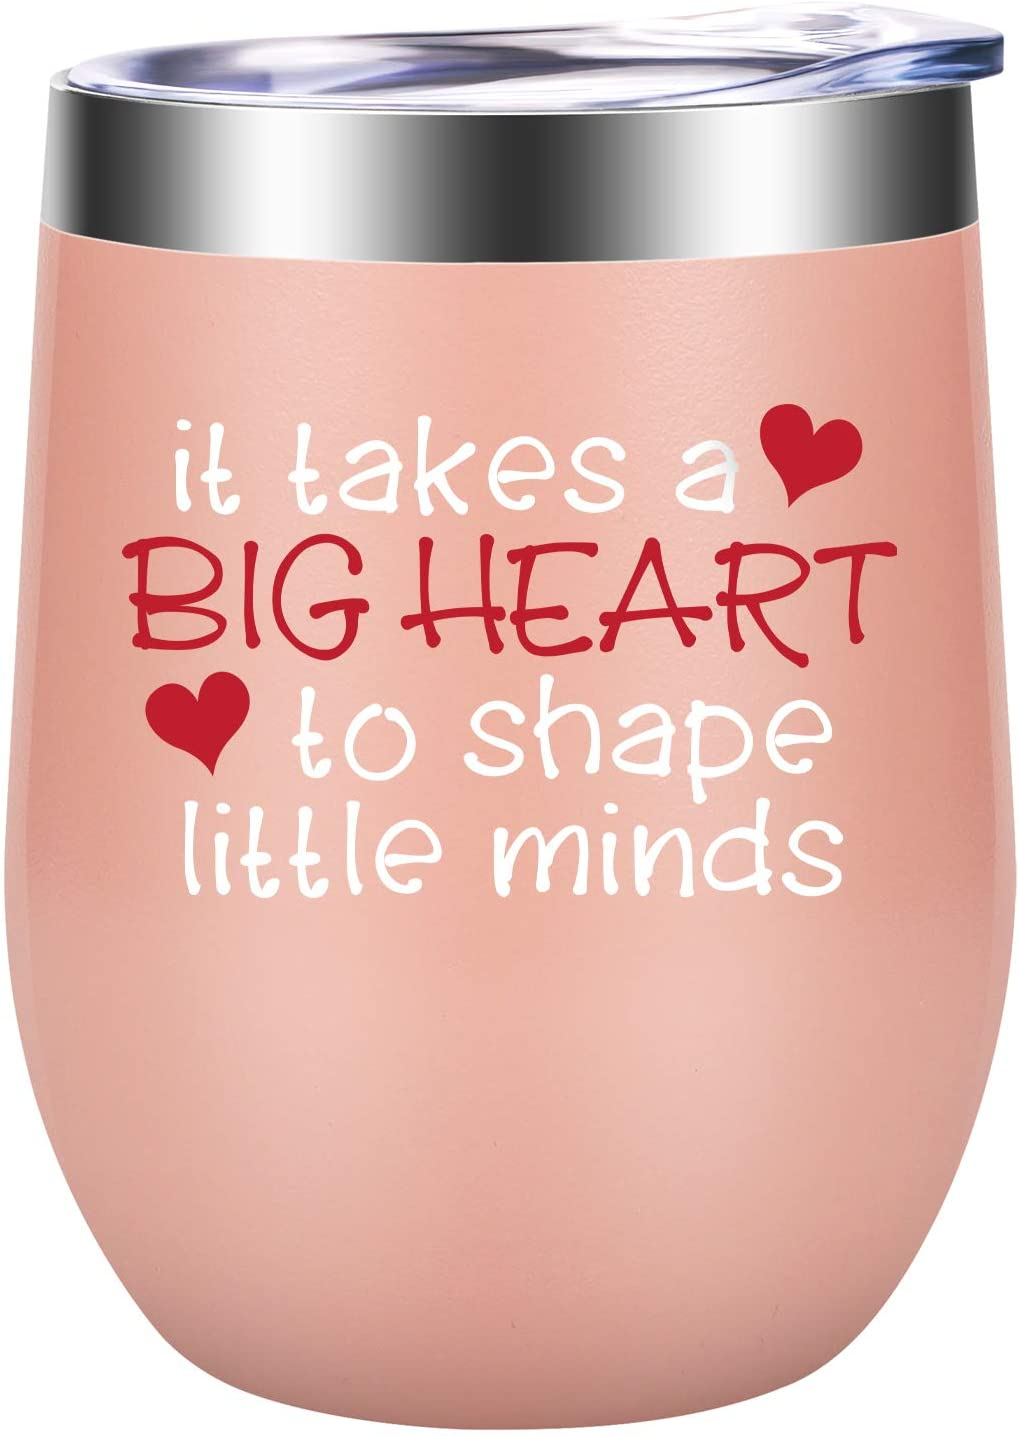 Teacher Gifts, Teacher Appreciation Gifts - Best Teacher Gifts for Women - Funny Birthday, Back to School, Thank You Gifts for Teachers - LEADO It Takes a Big Heart to Shape Little Minds Wine Tumbler